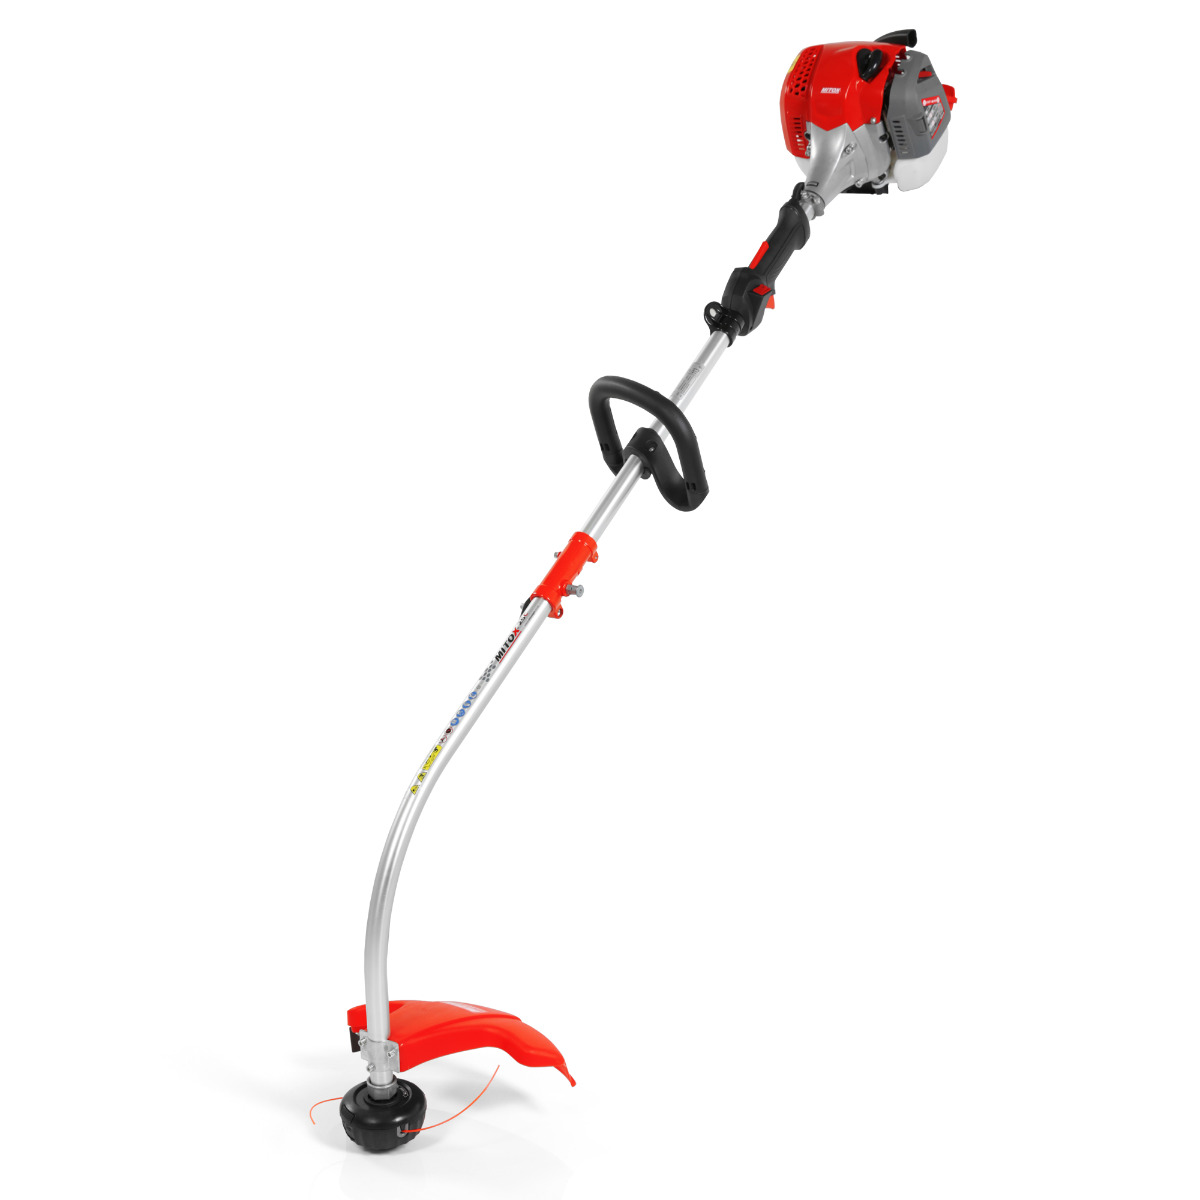 Mitox 25C-A Select Petrol Strimmer